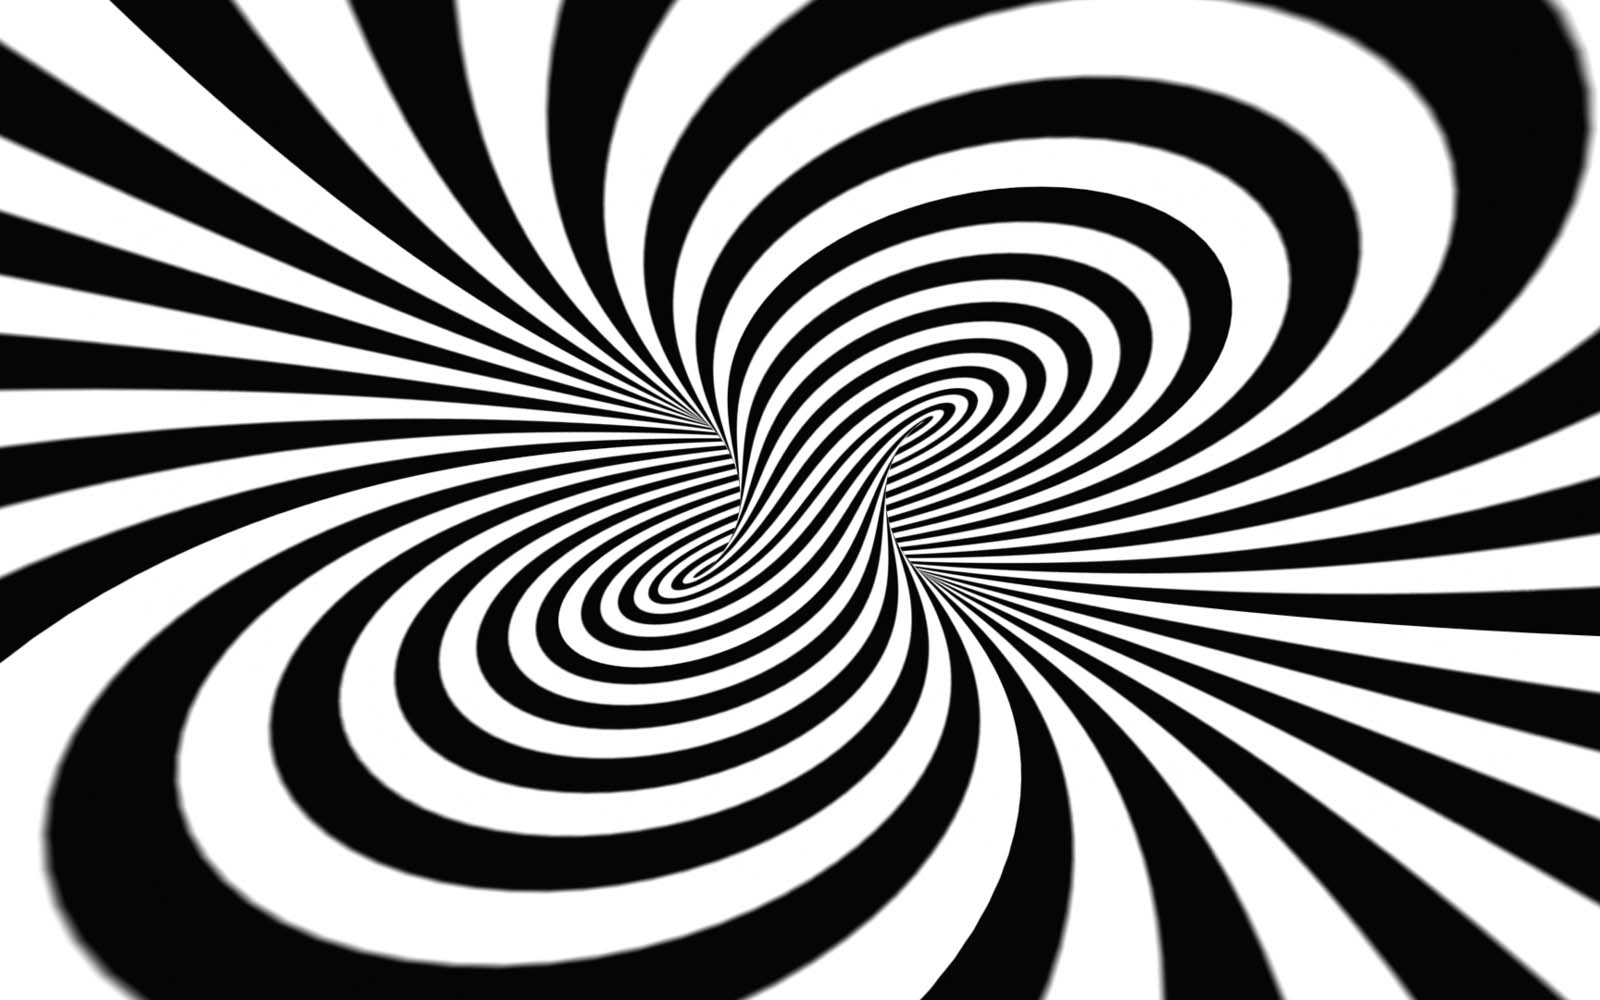 wallpapers: 3D Graphic Spiral Wallpapers